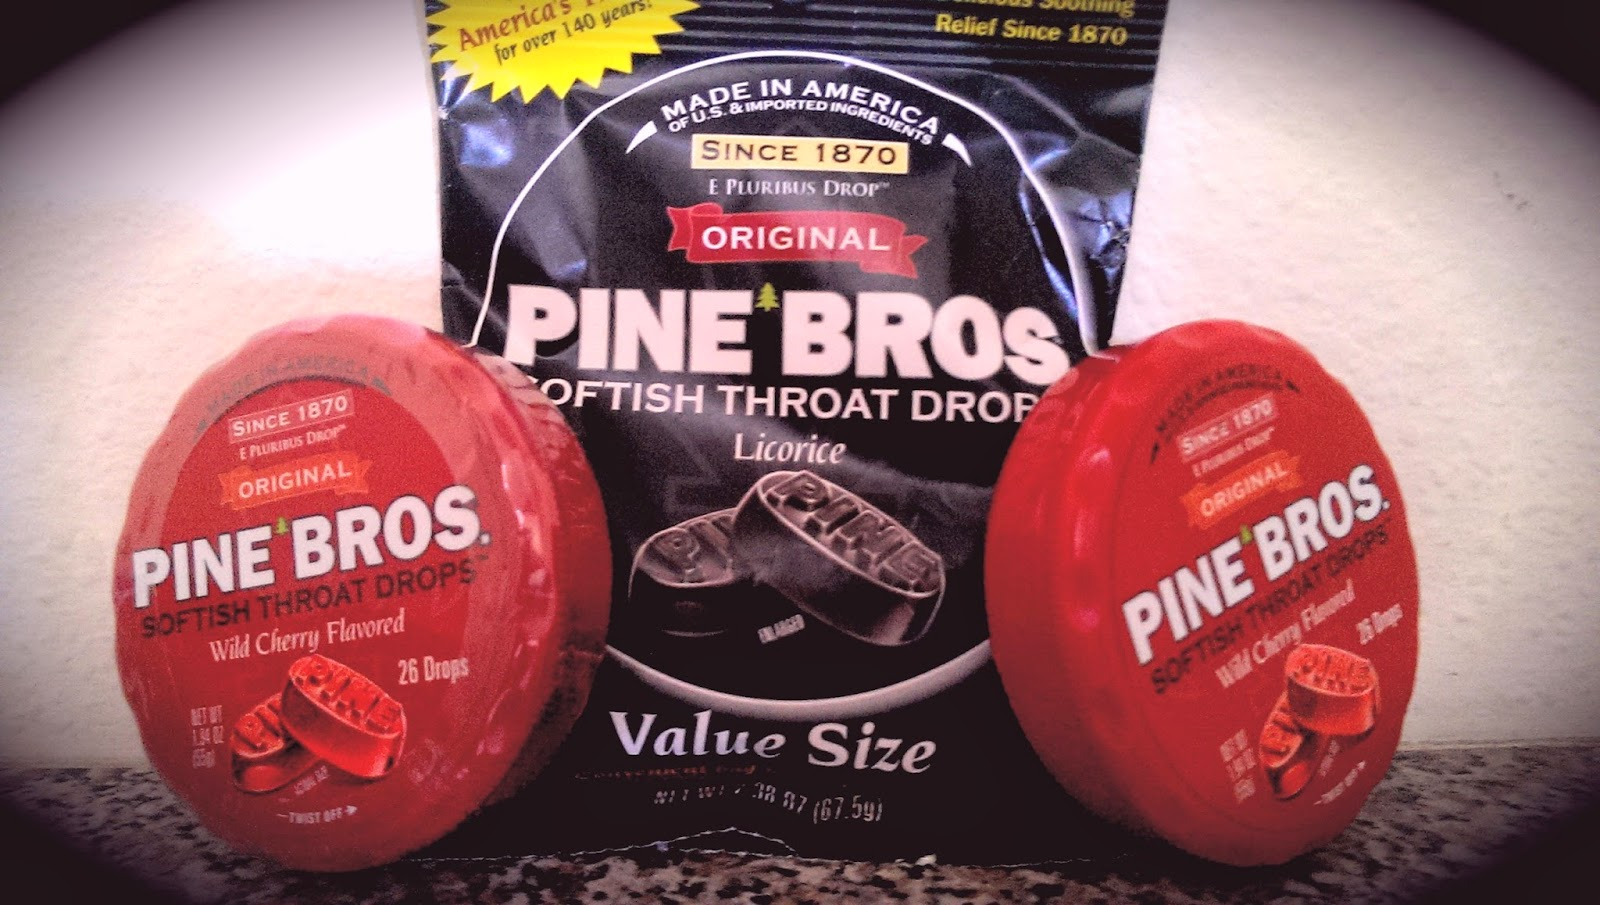 pixel Pine Brothers Softish Throat Drops Review - Sore Throat Relief